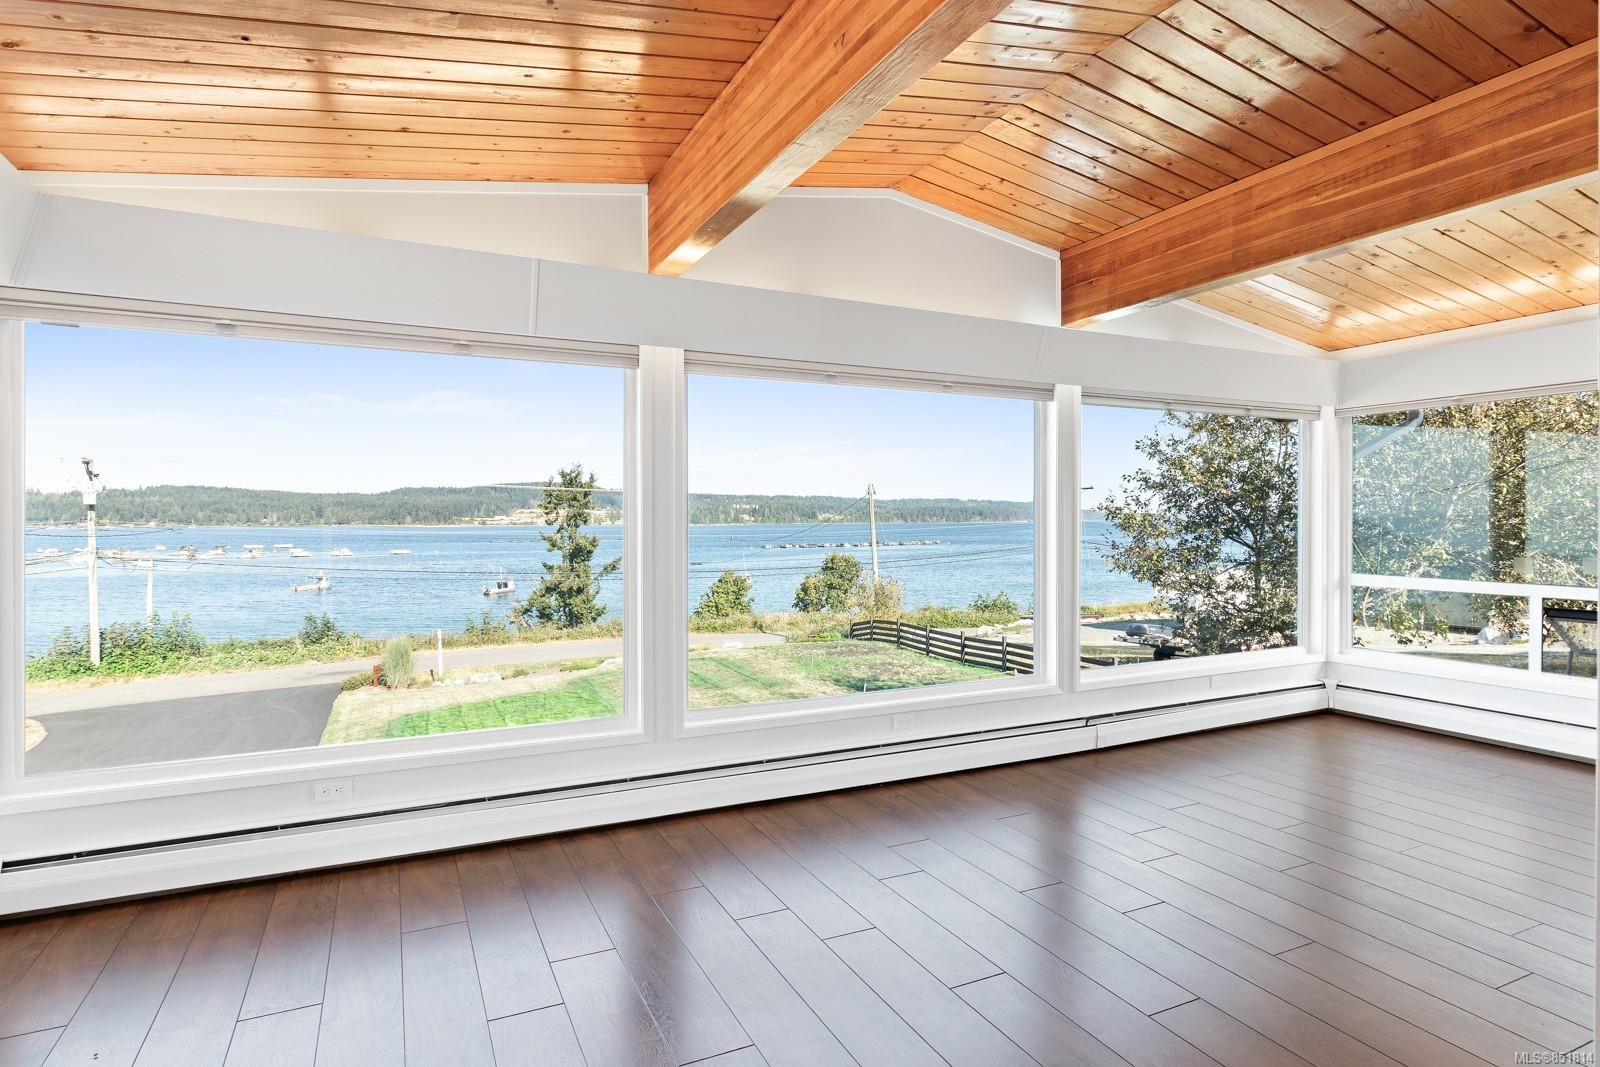 Photo 7: Photos: 191 Muschamp Rd in : CV Union Bay/Fanny Bay House for sale (Comox Valley)  : MLS®# 851814